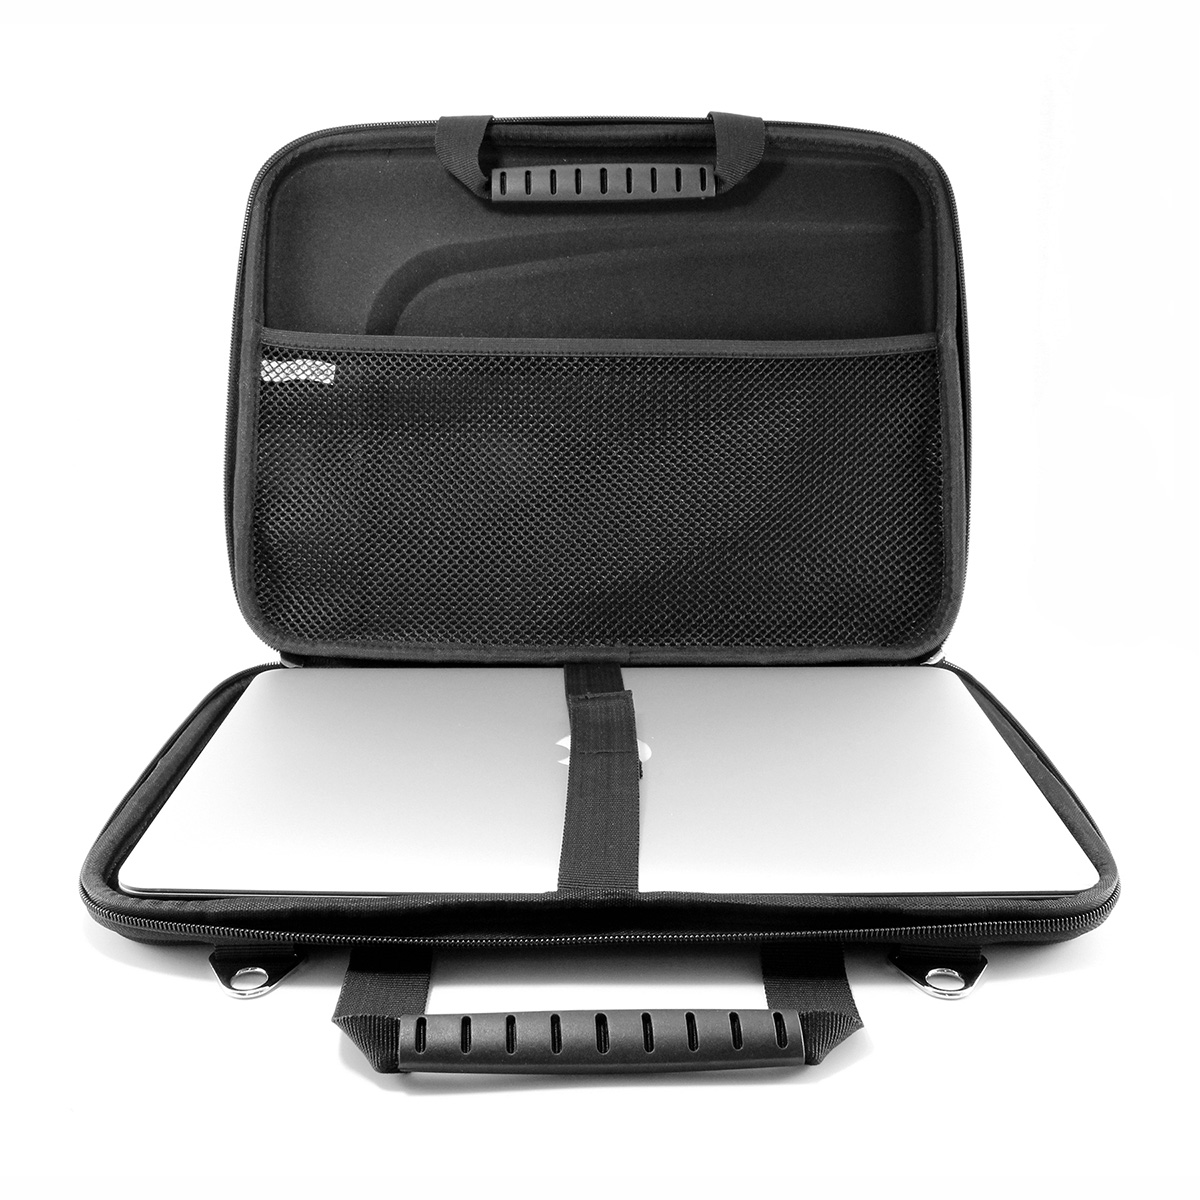 "Drive Logic Carrying Case for 13-inch MacBook Air / Pro, 13.3"" Chromebook, UltraBook"